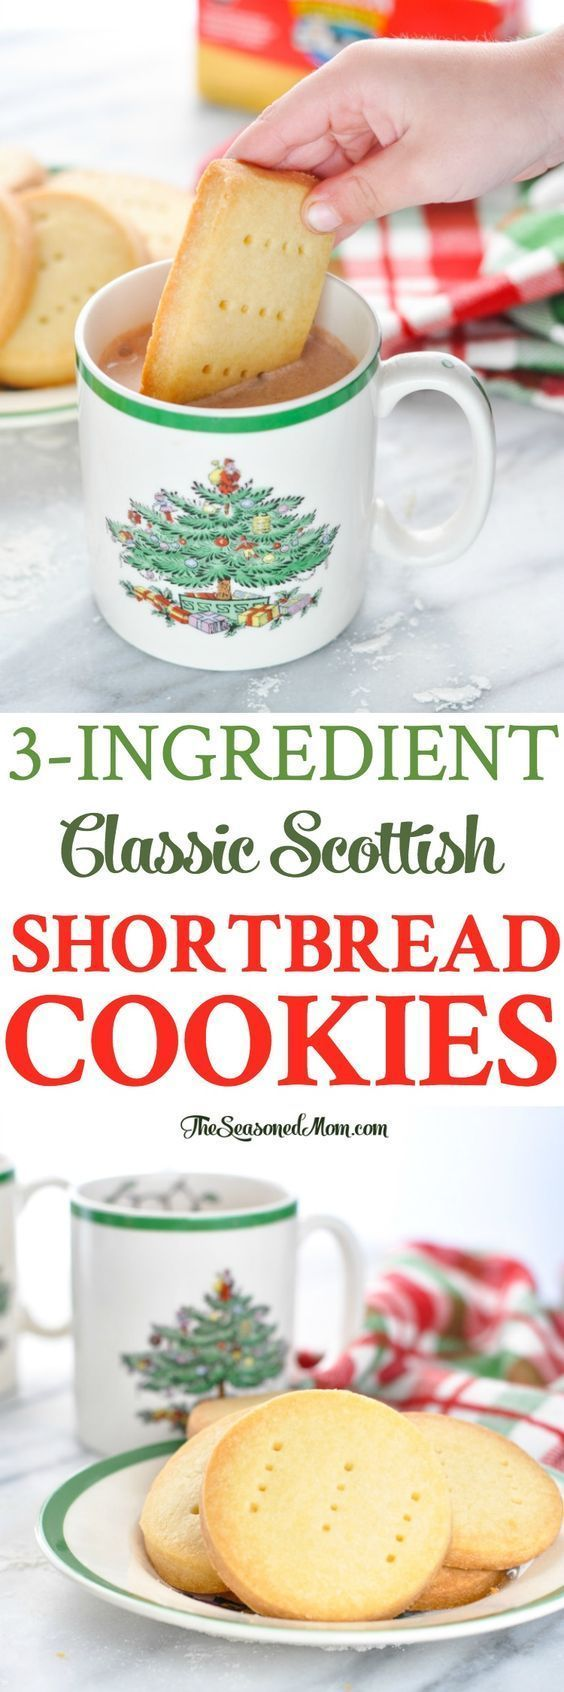 These 3-Ingredient Classic Scottish Shortbread Cookies are an easy dessert that's perfect for Christmas! Cookie Recipes | Baking | Christmas Cookies #cookies #christmas #baking